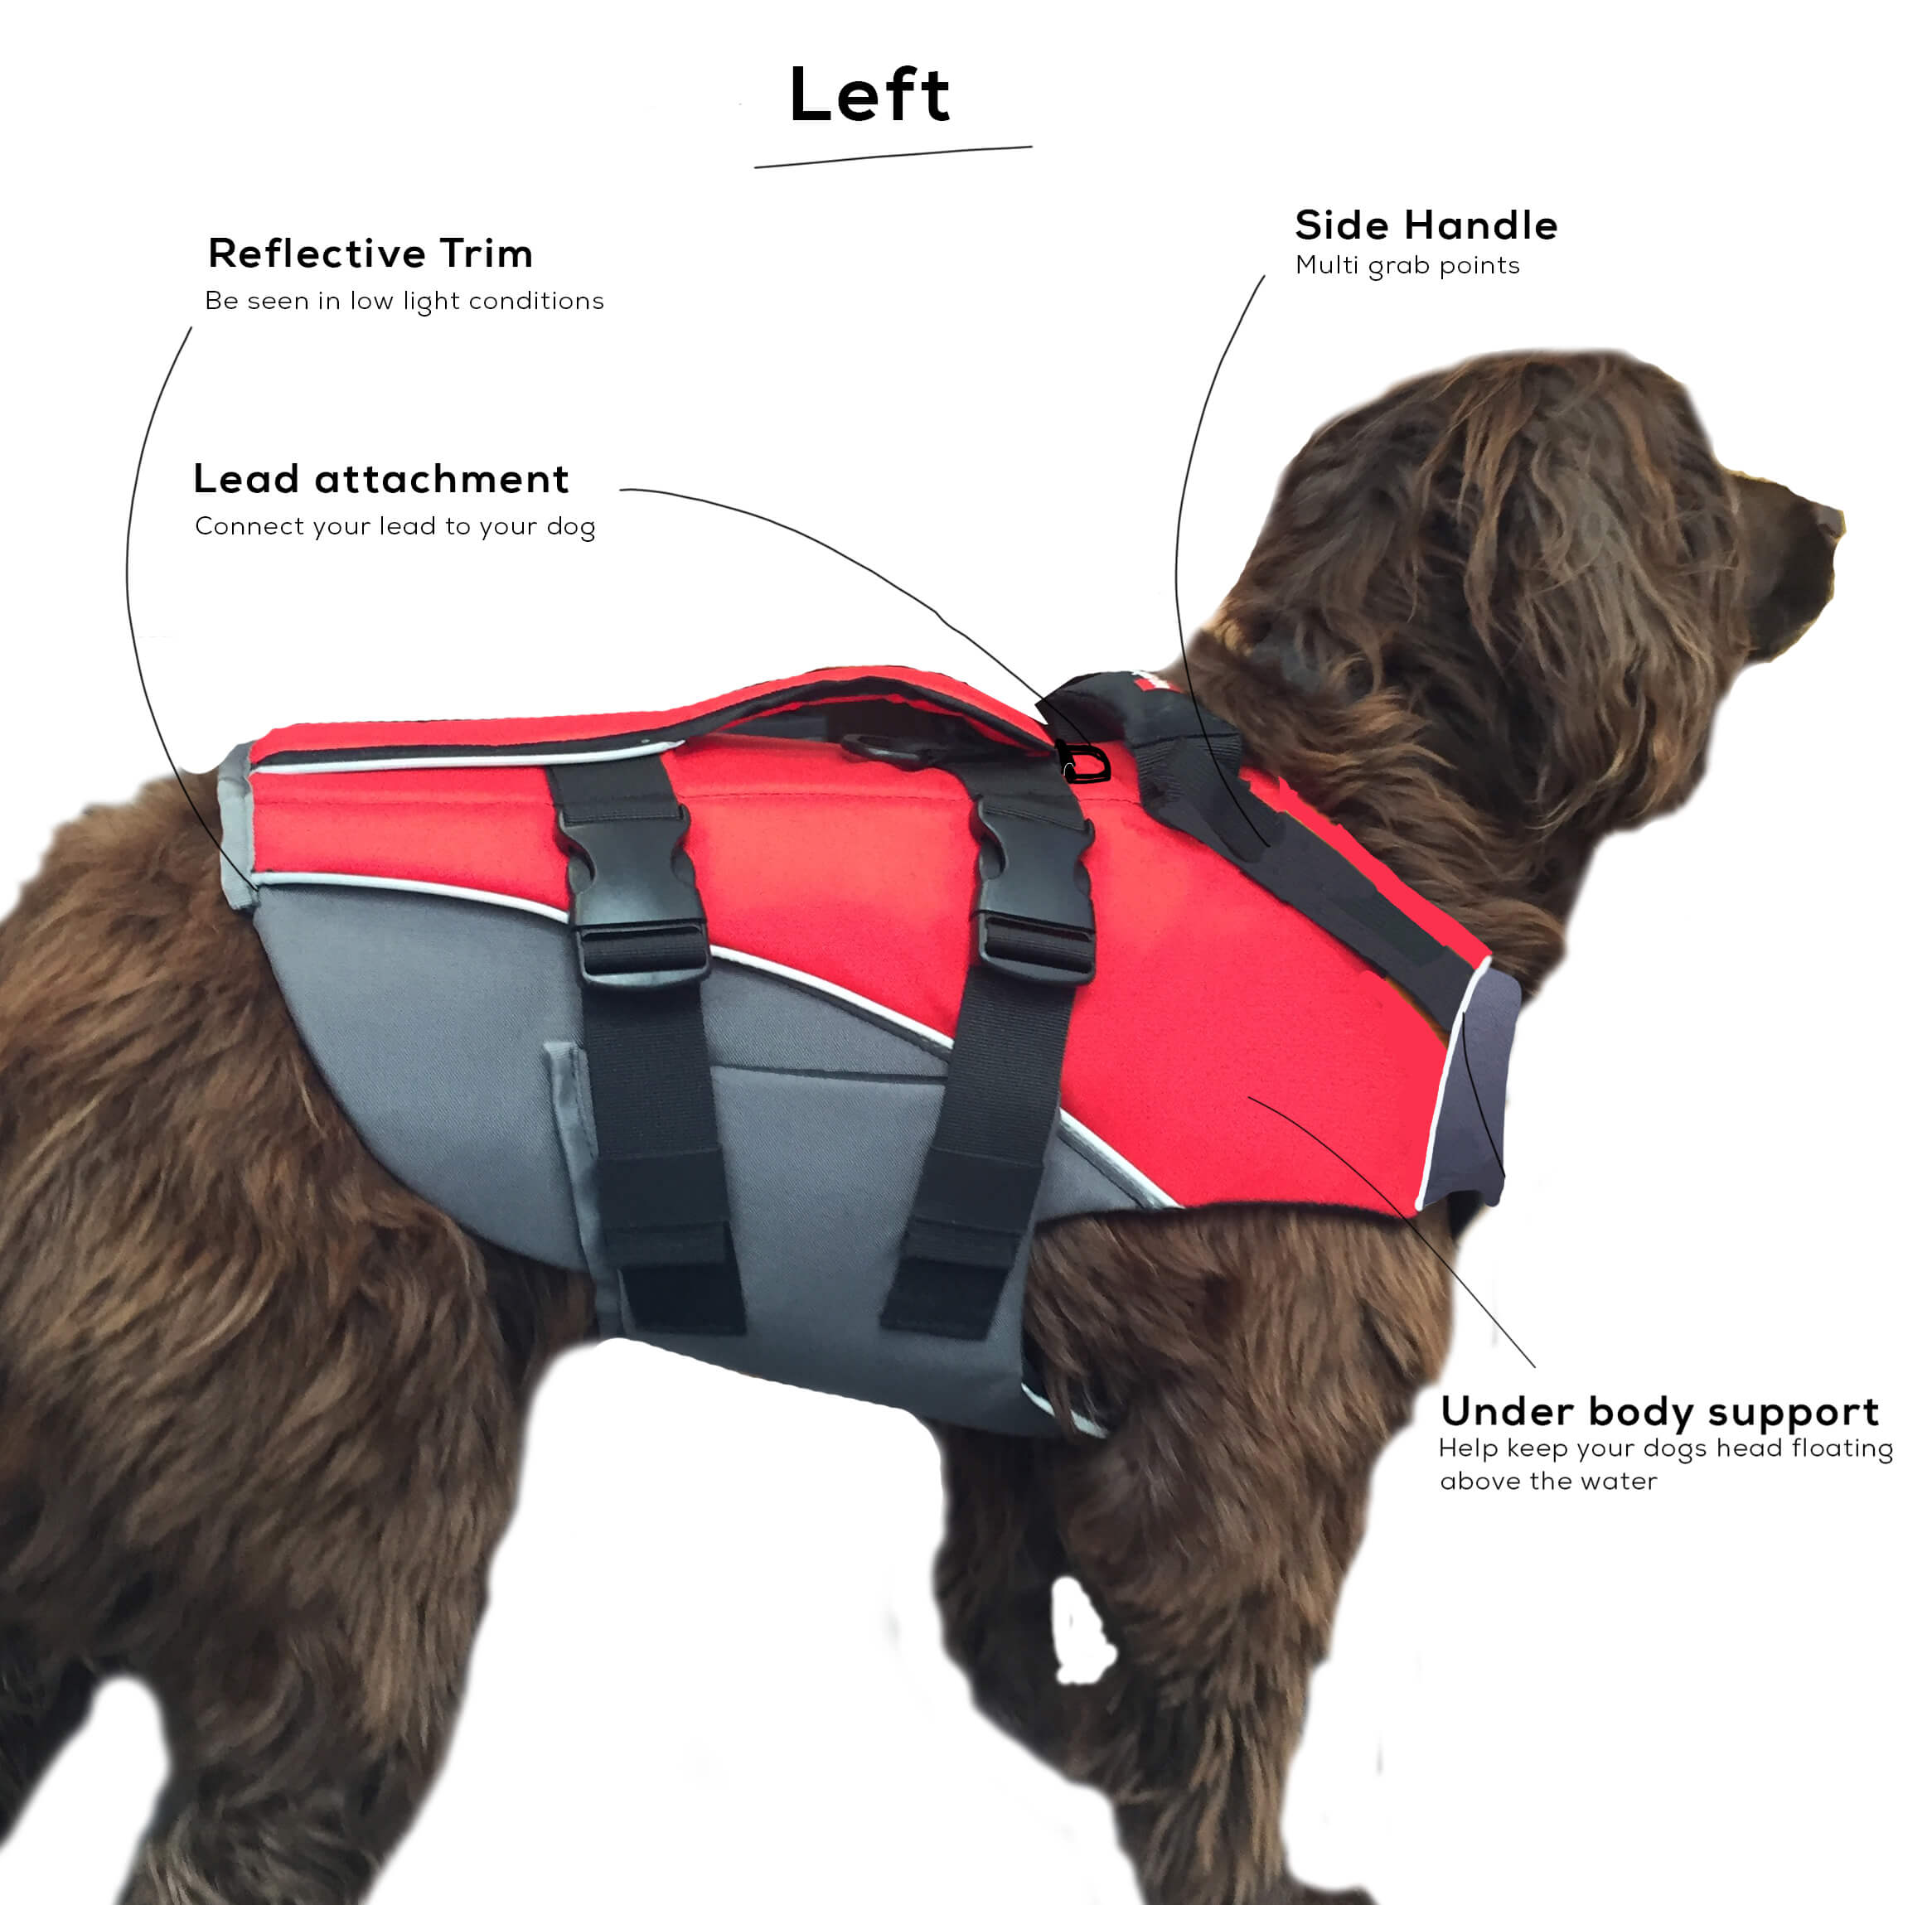 A Detailed Image Of The Red Original Dog Buoyancy Aid - Left